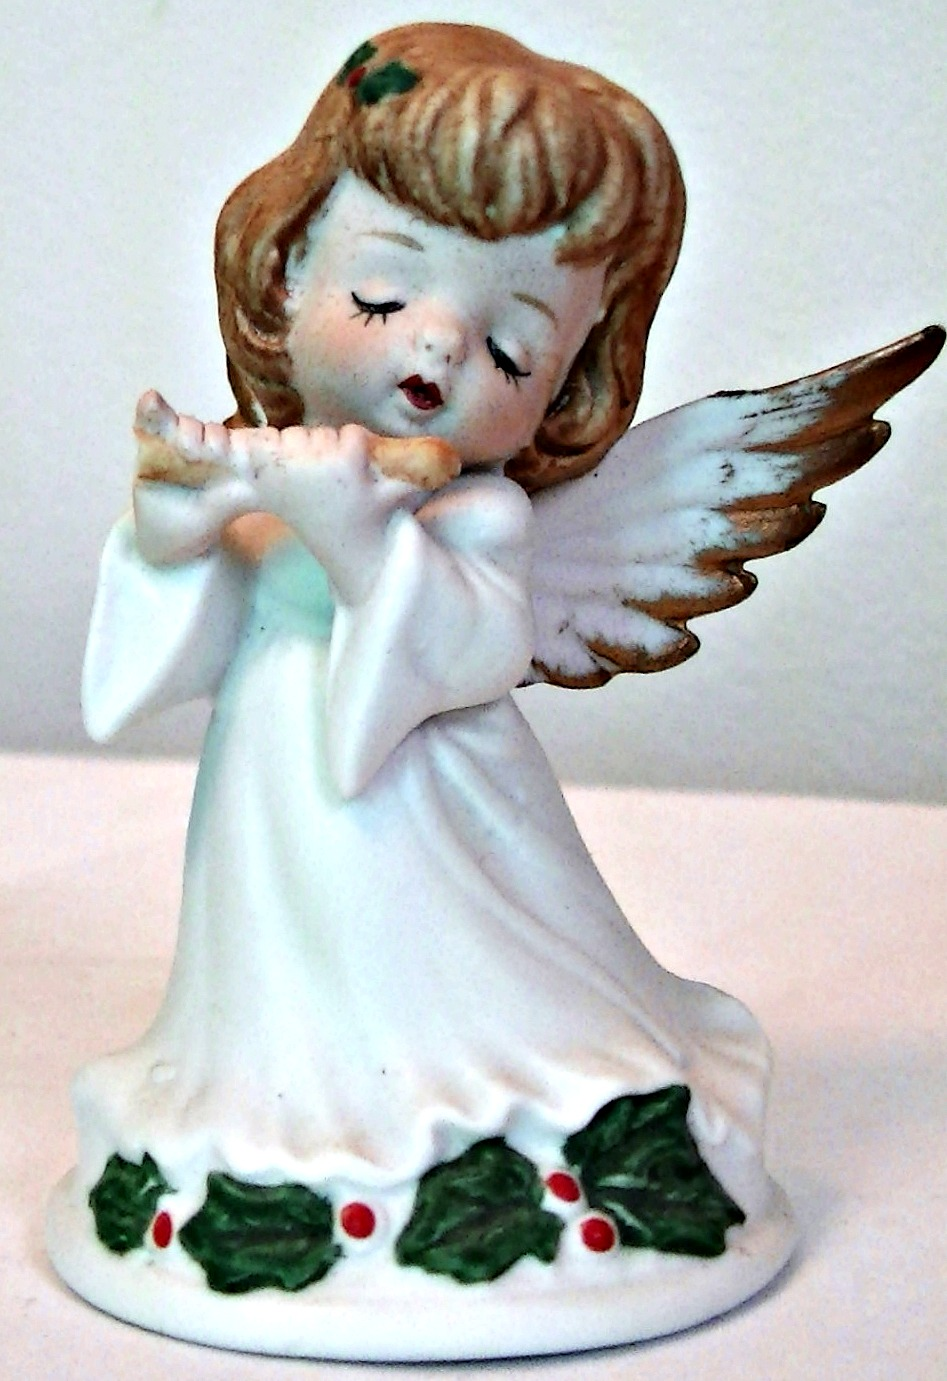 Christmas angel with holly leaves